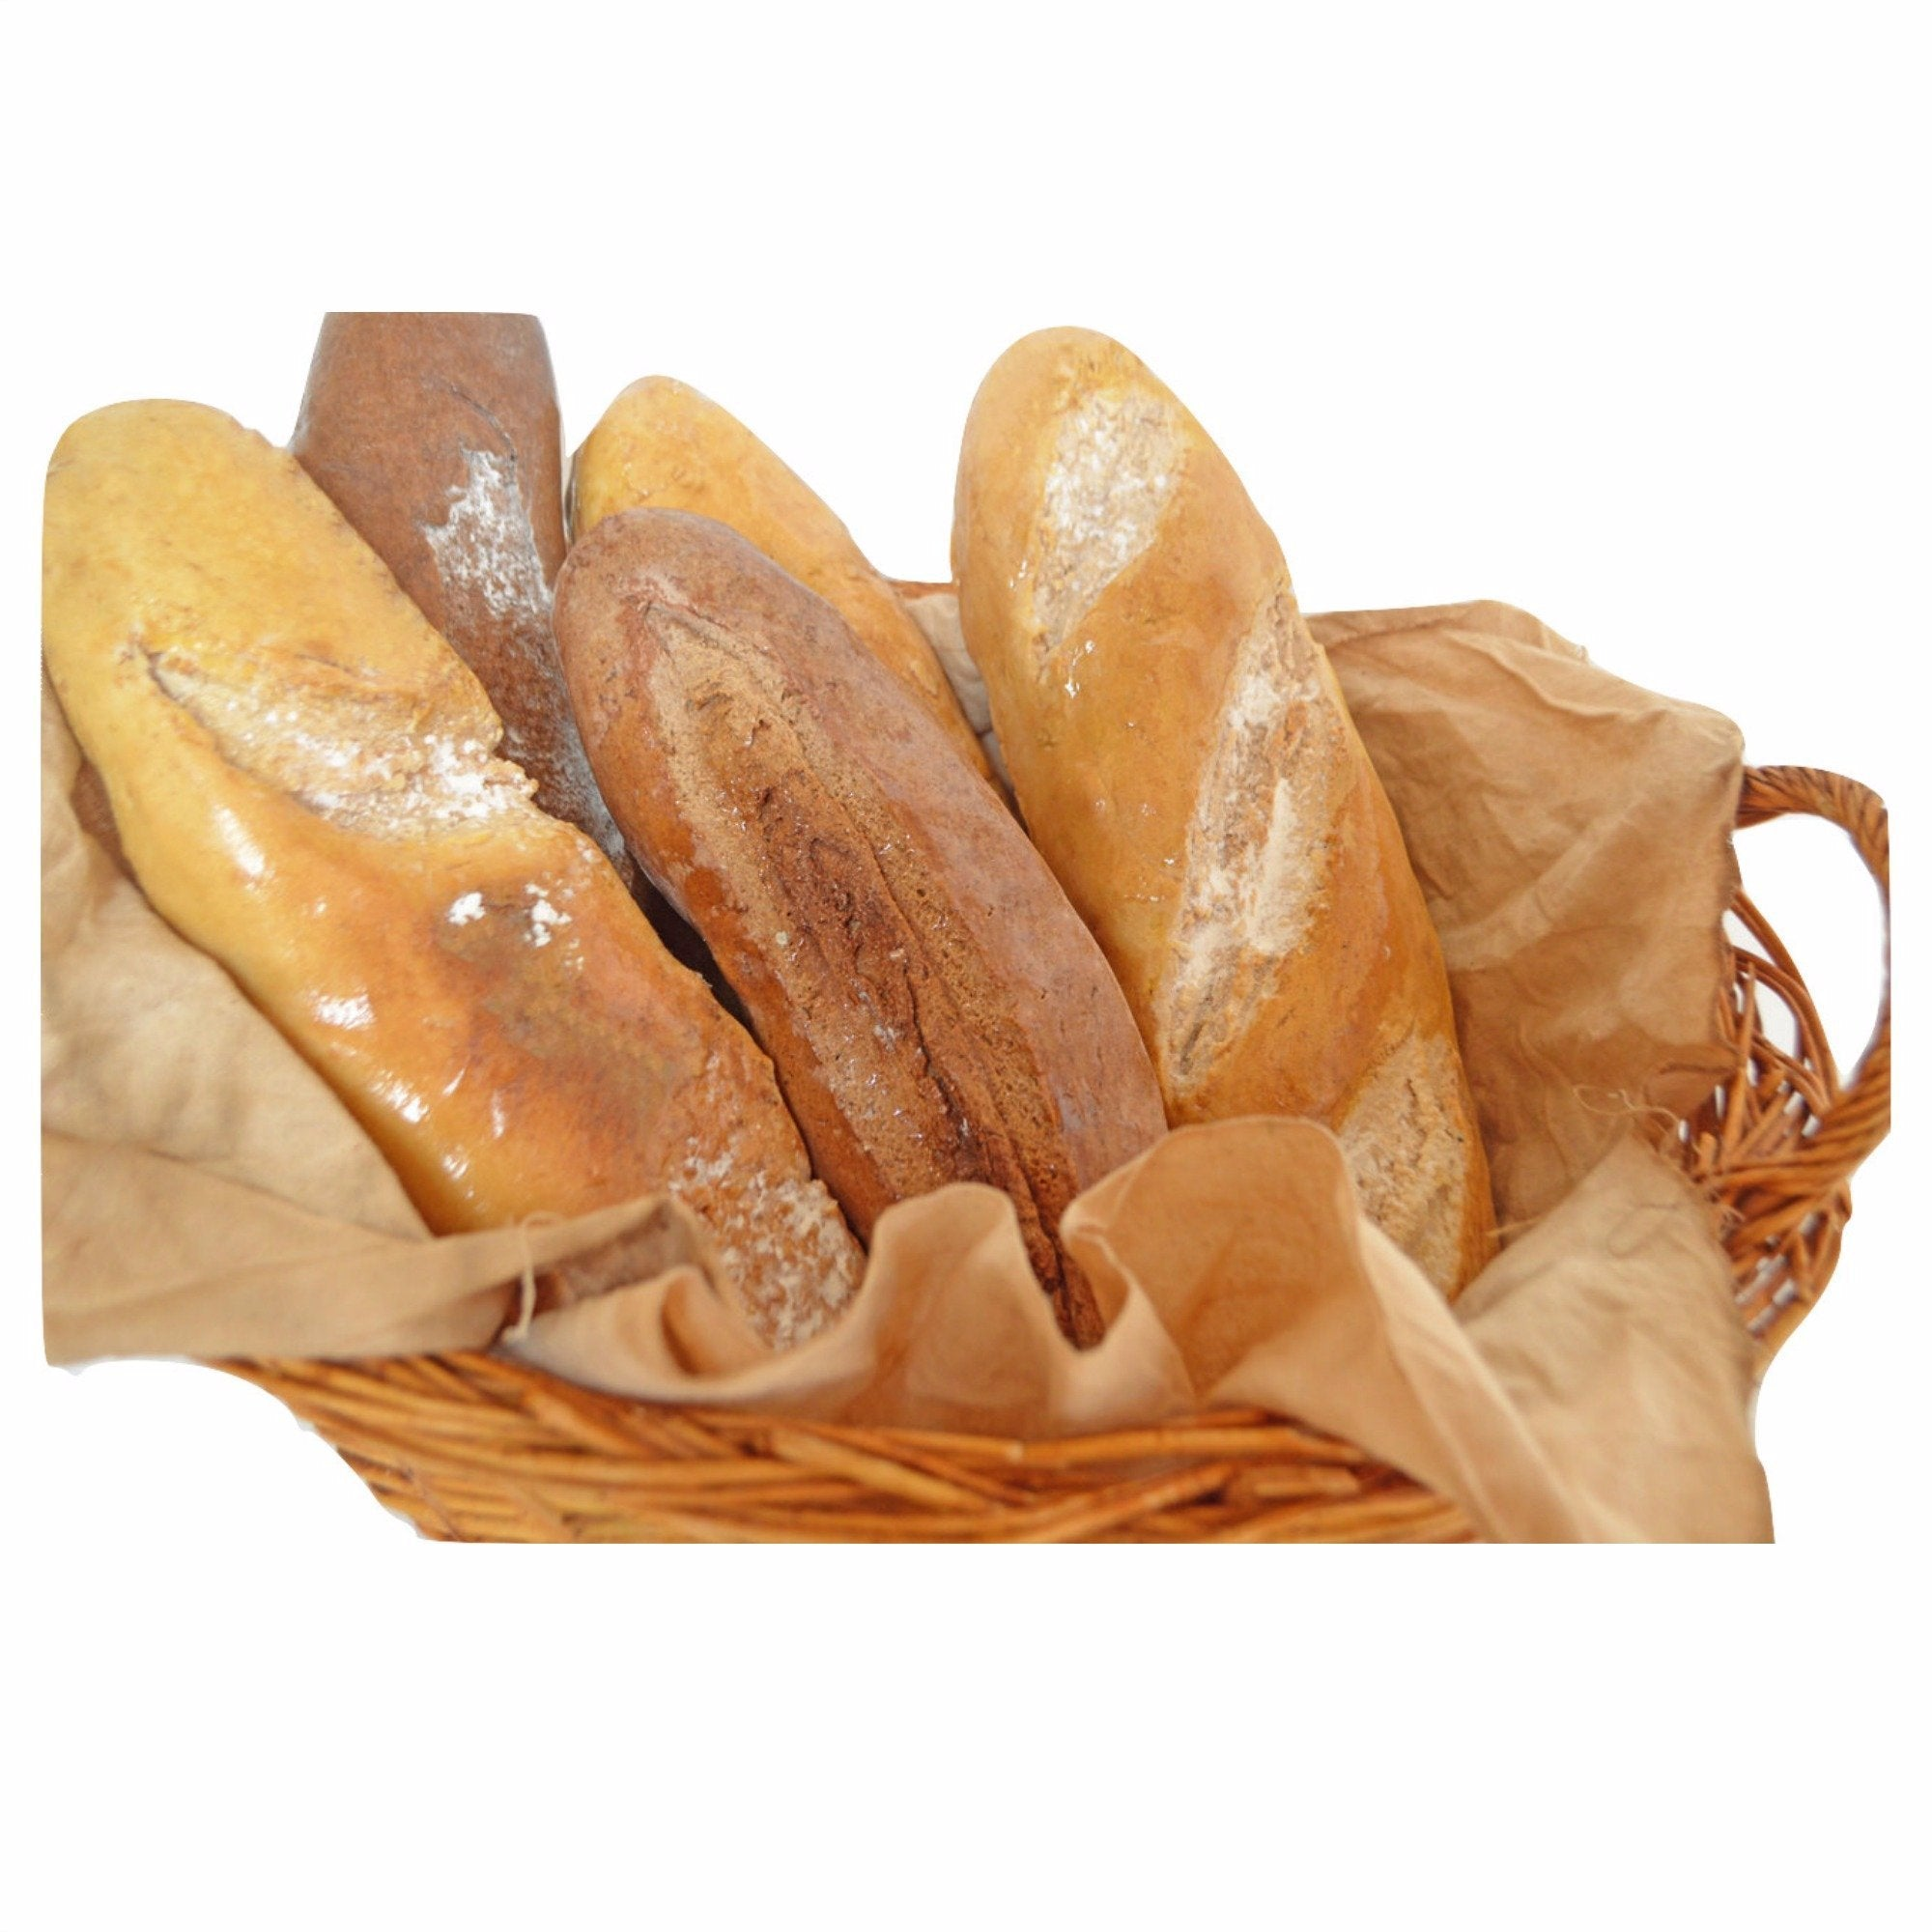 Everything Dawn Bakery Candle Treats Fake Bread Rustic French Bread Loaves Fake